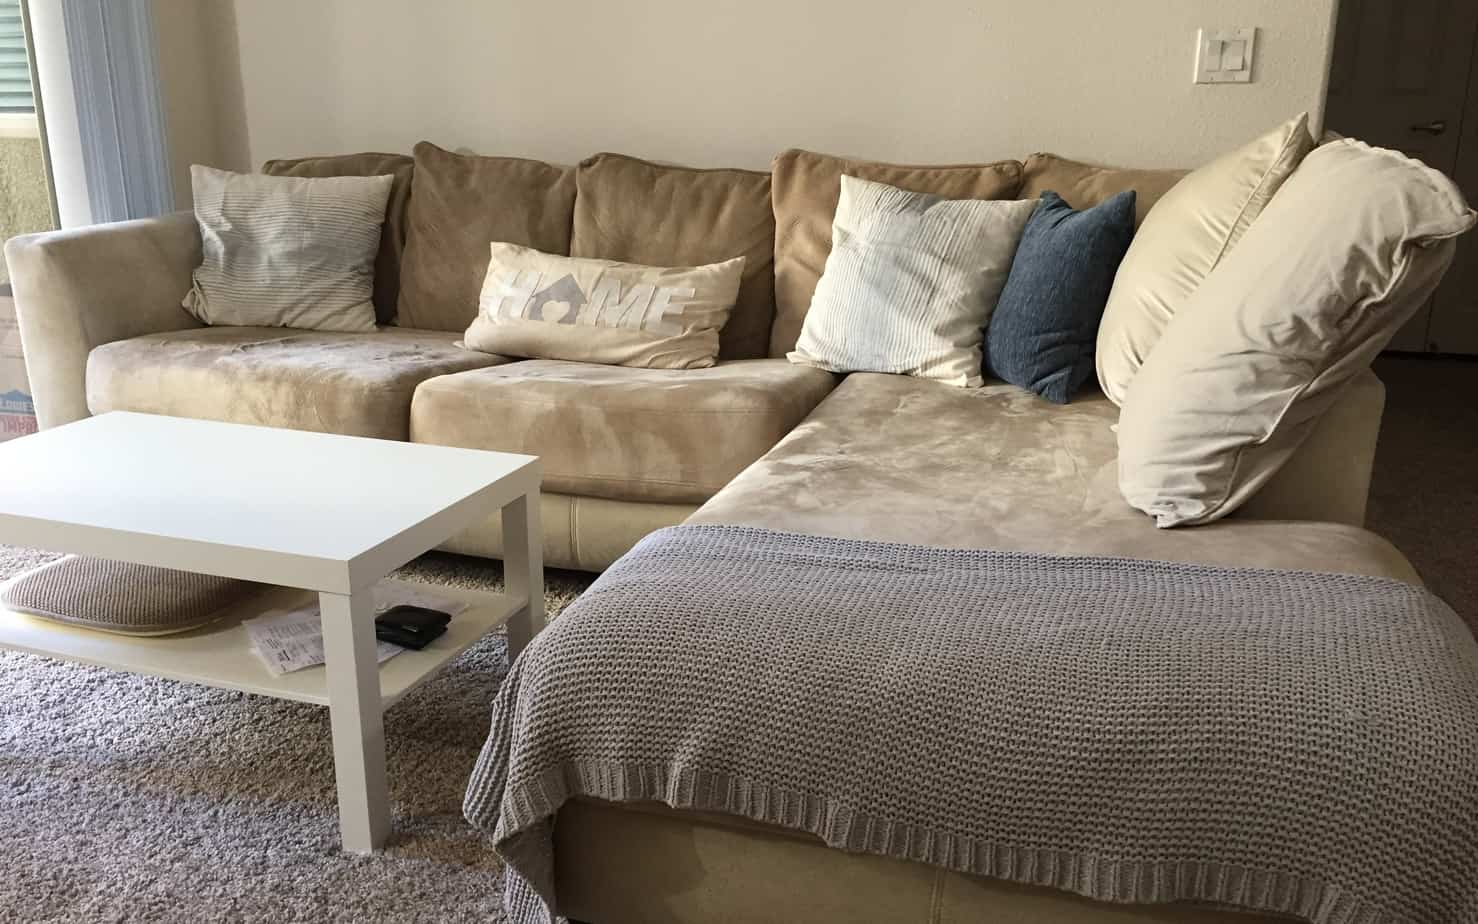 Couches 4 How Much A Used Couch Should Actually Cost Budget Friendly